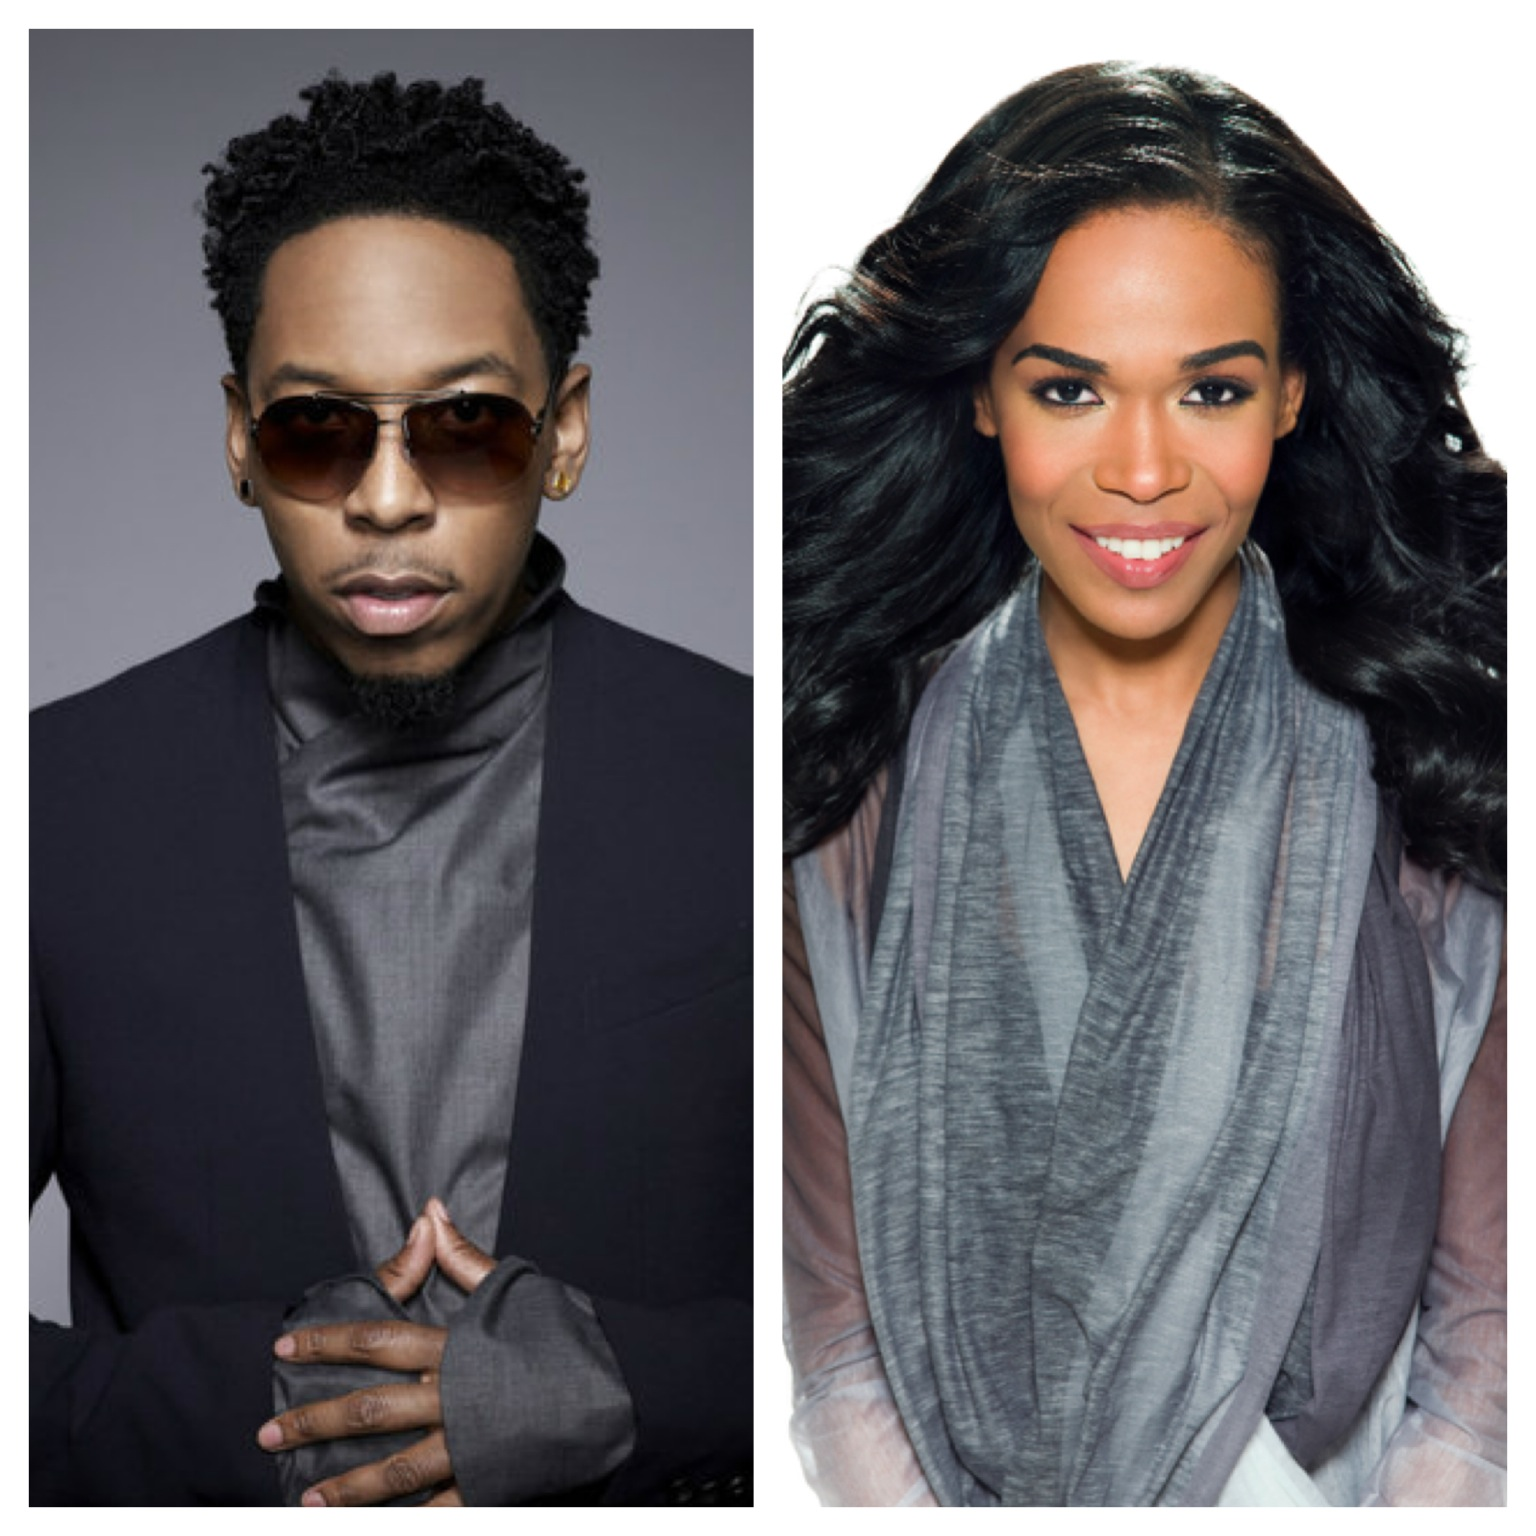 deitrick haddon + michelle williams